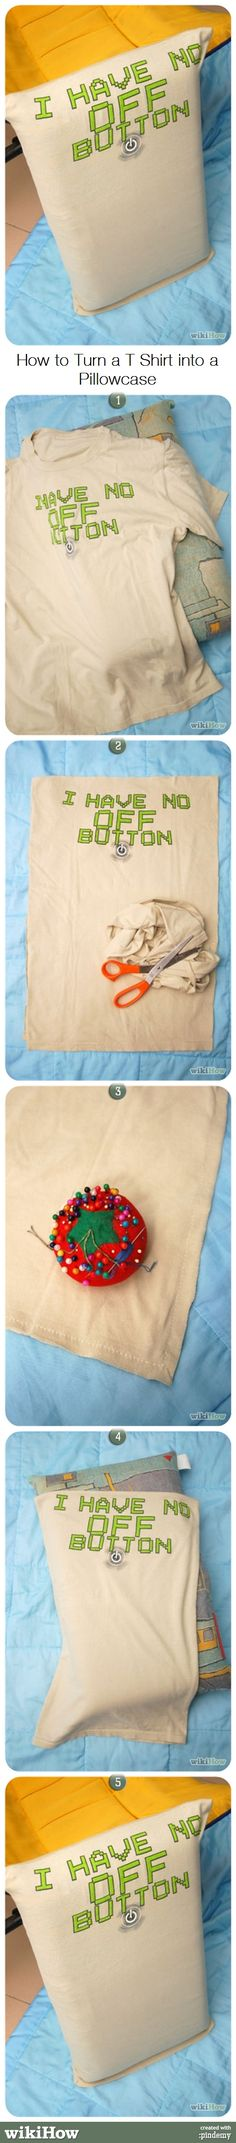 How to Turn a T Shirt into a Pillowcase #upcycle #repurpose #recycle #oldshirt #home